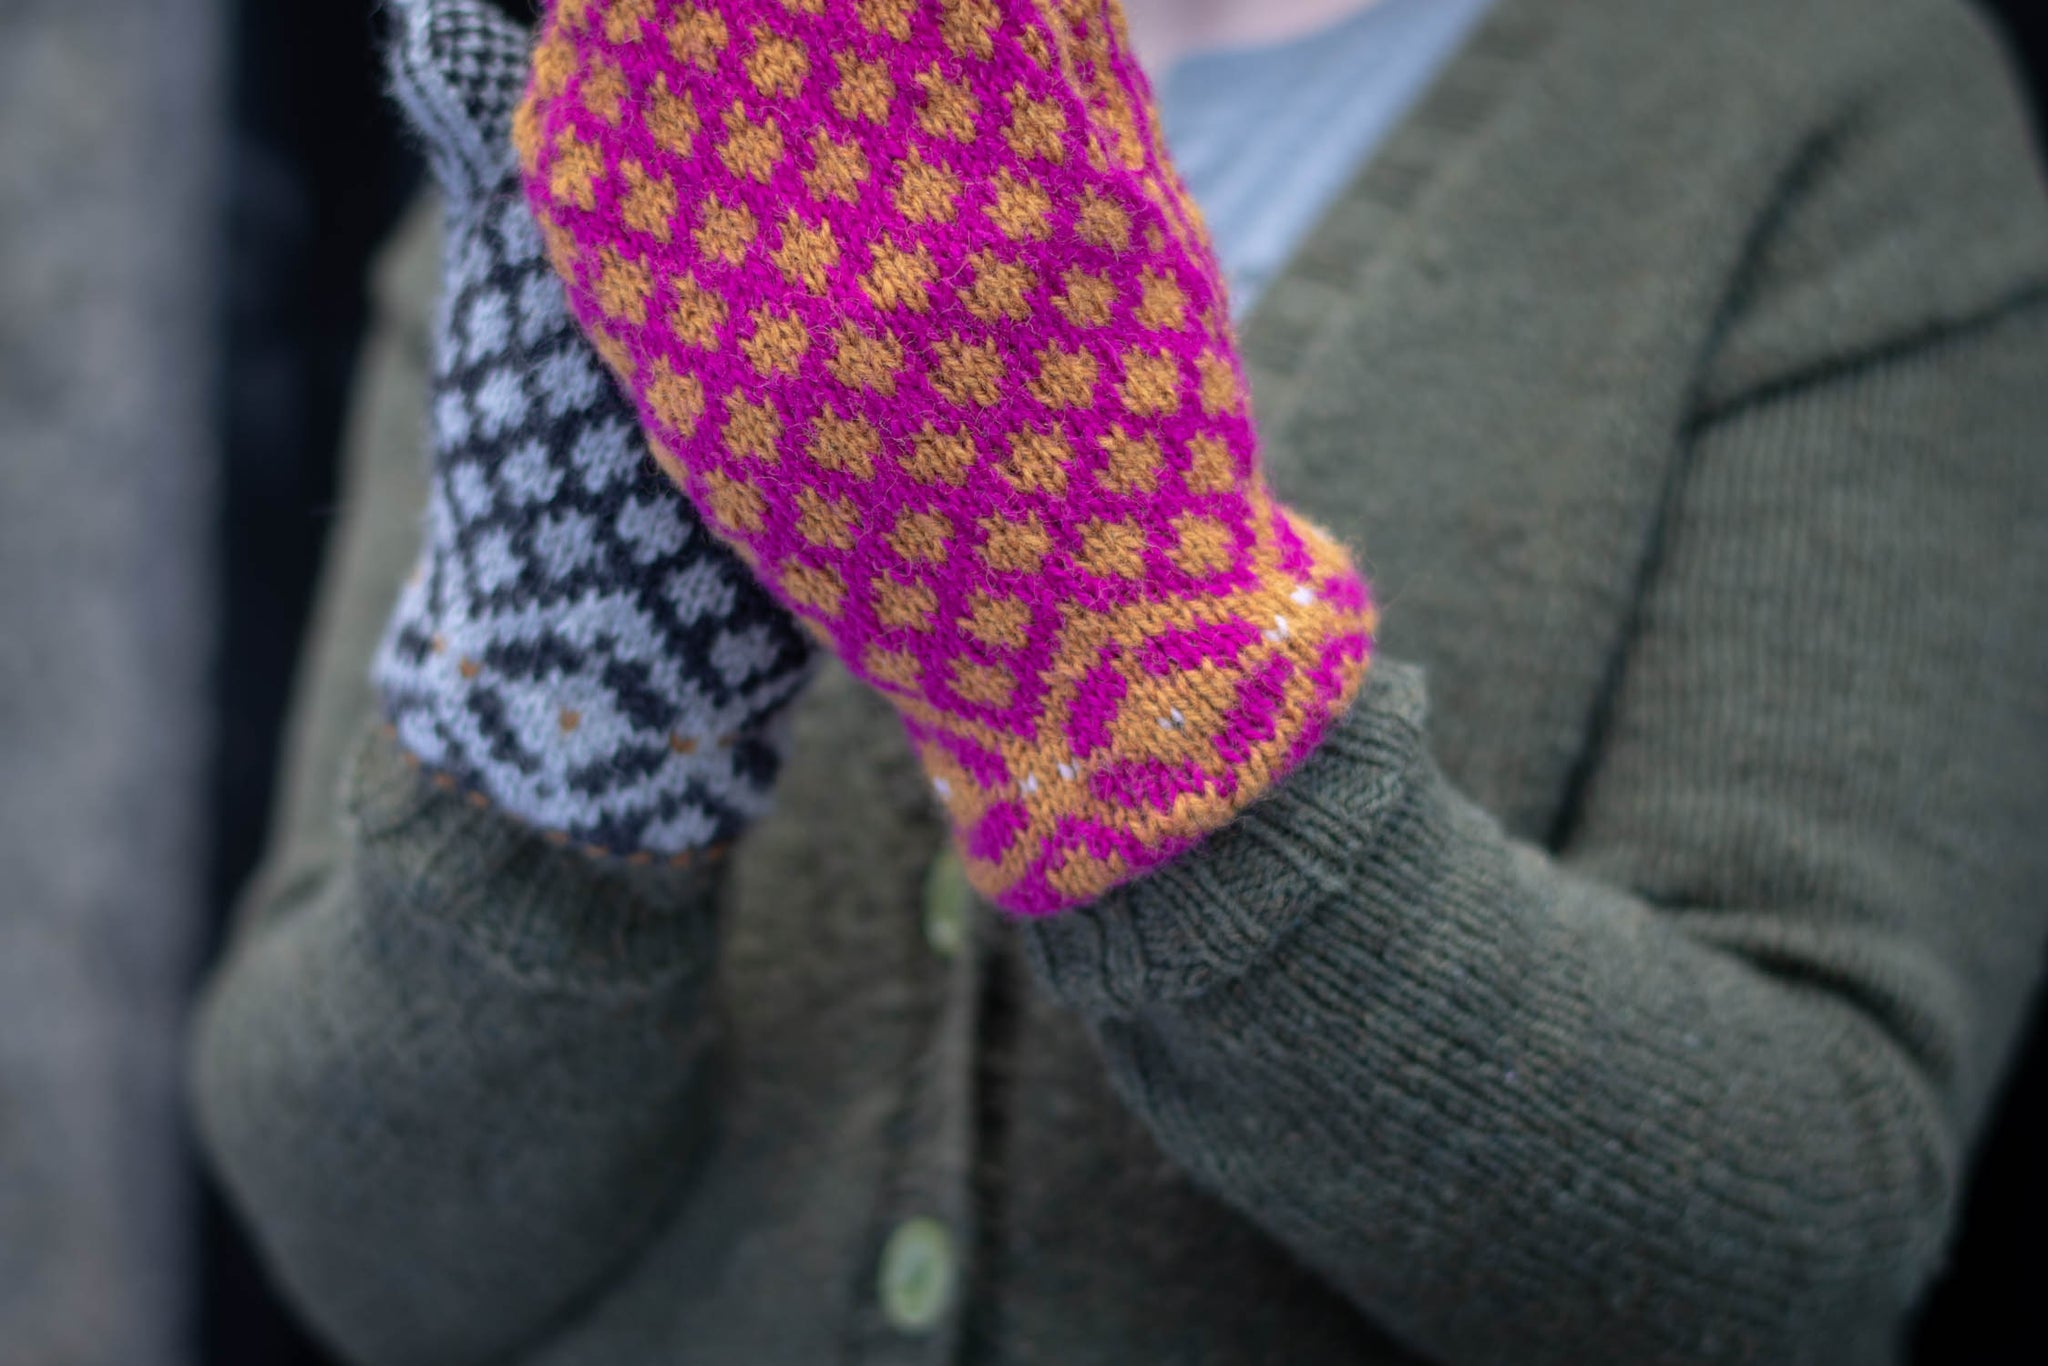 Two hands held up, clasped together. One is wearing a pink and yellow colourwork mitten, the other wears a grey mitten.